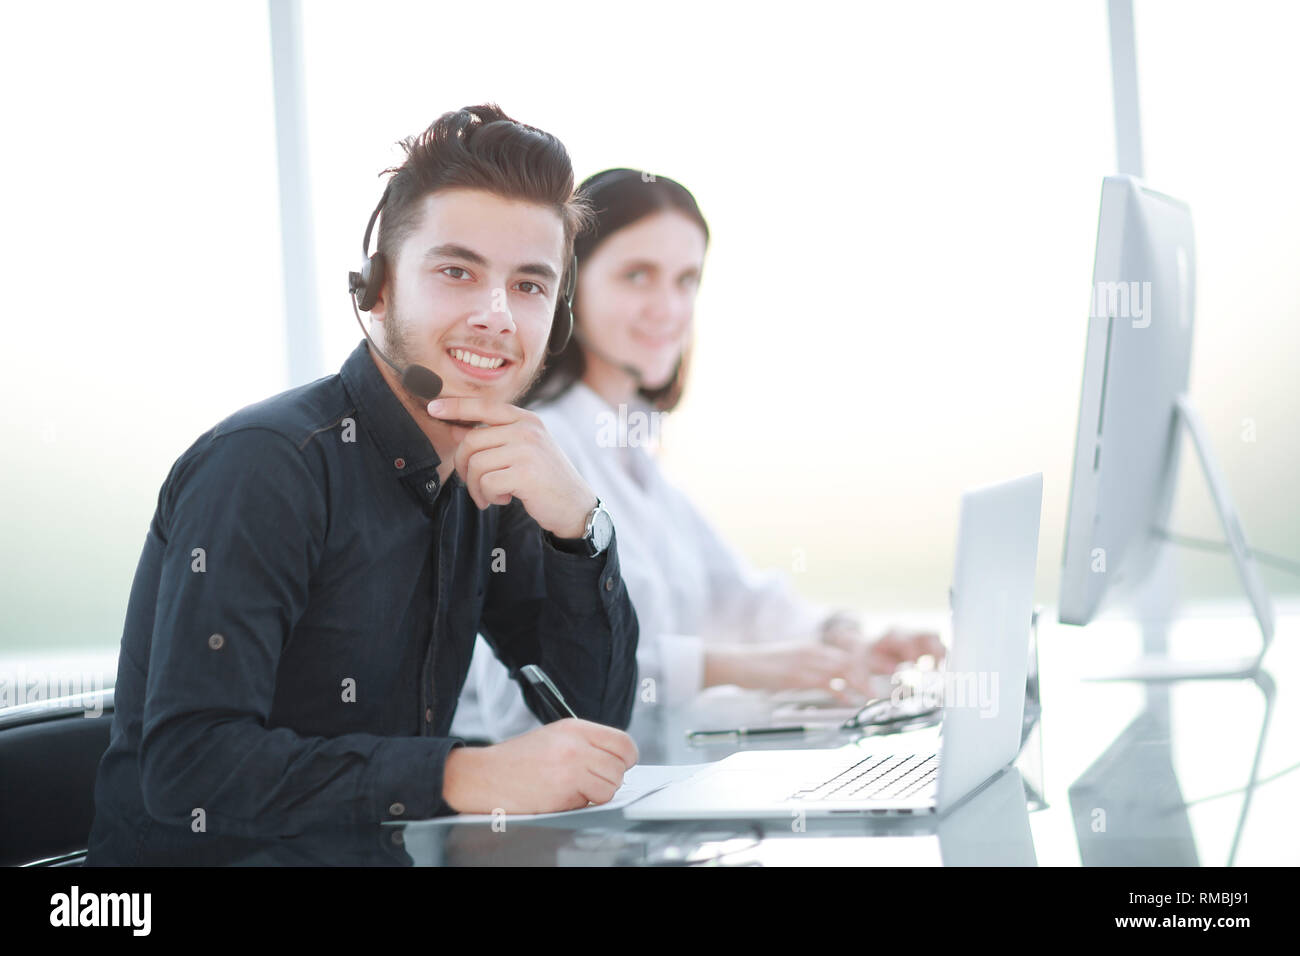 professional workers call center in the workplace Stock Photo